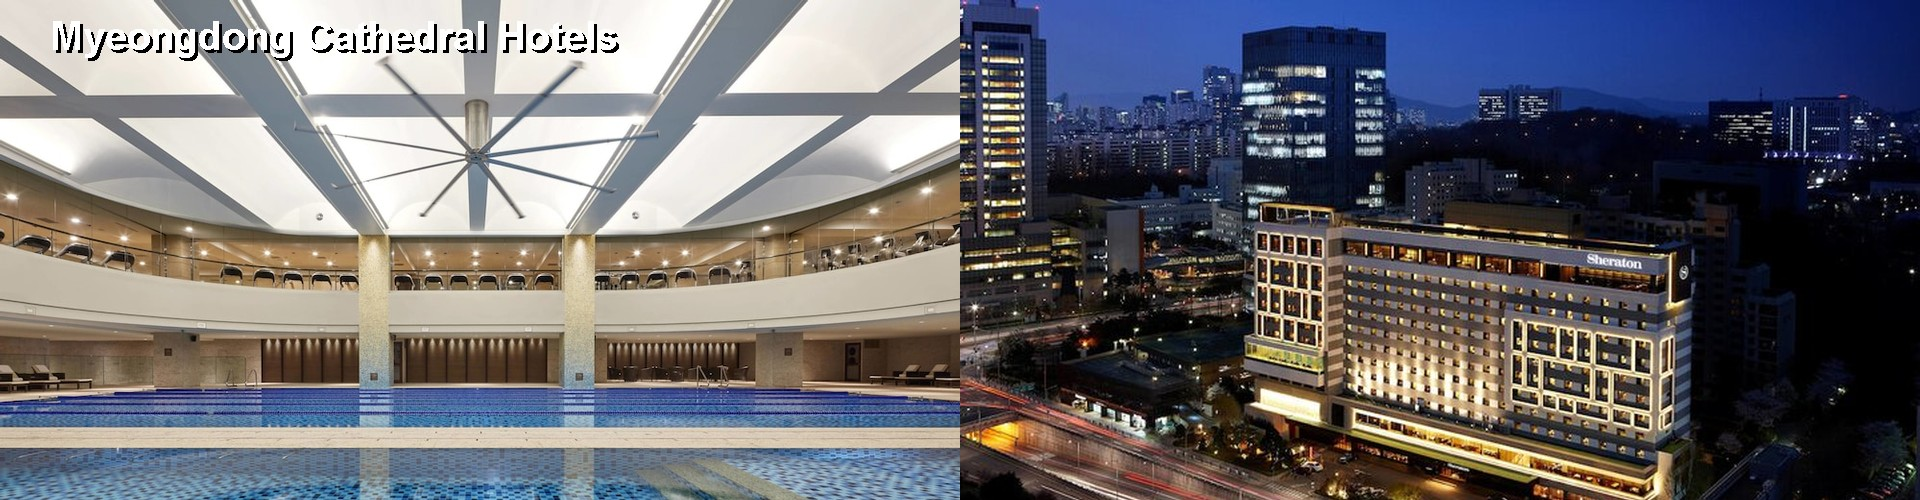 5 Best Hotels Near Myeongdong Cathedral